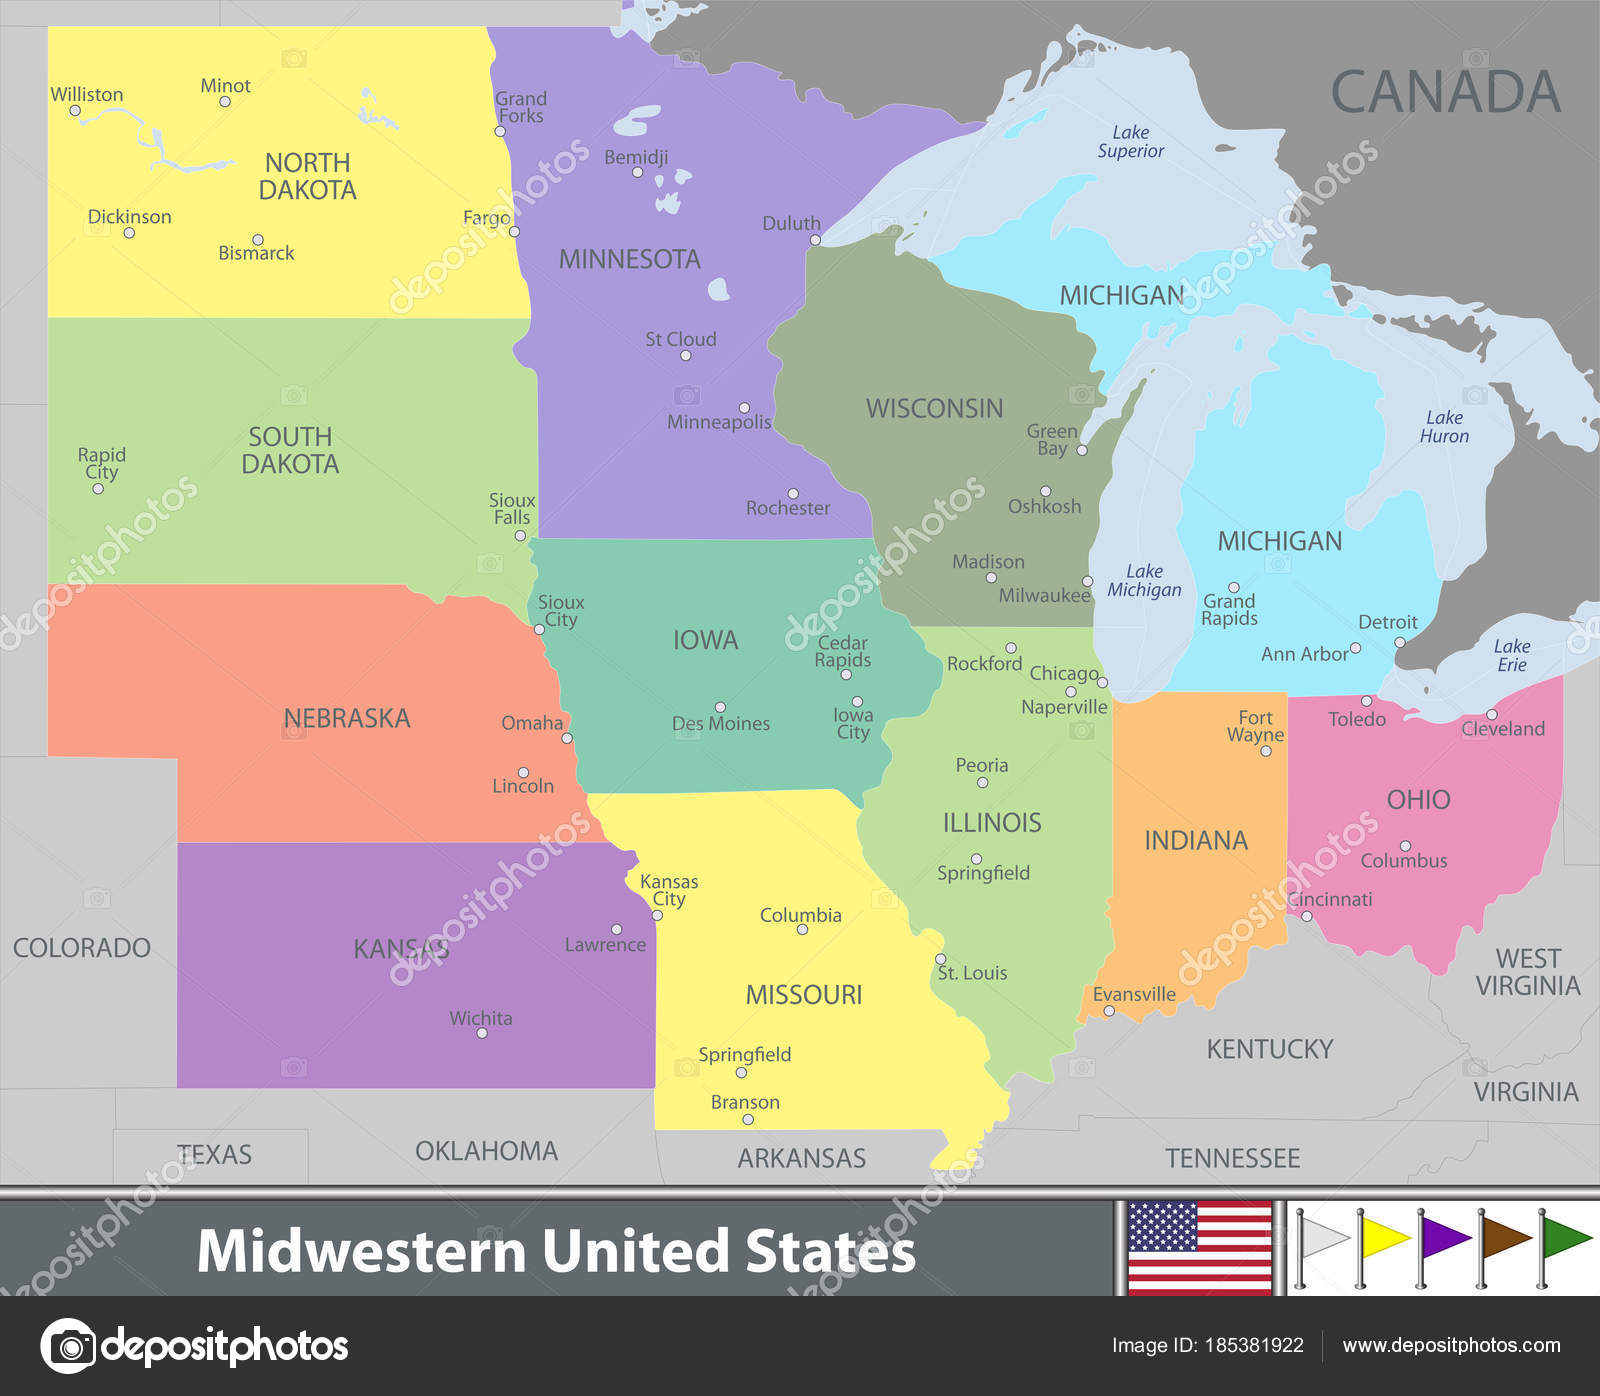 22 Blank Map Of Midwest States Images